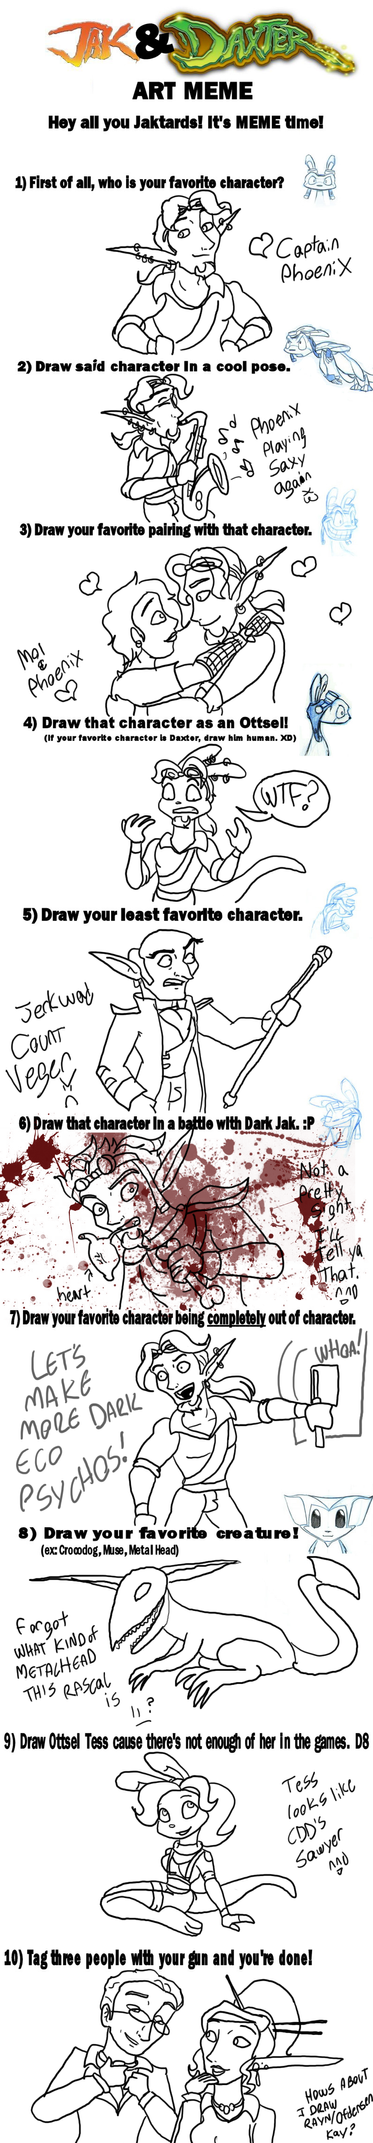 Jak and Daxter Meme by TromboneGothGirl84